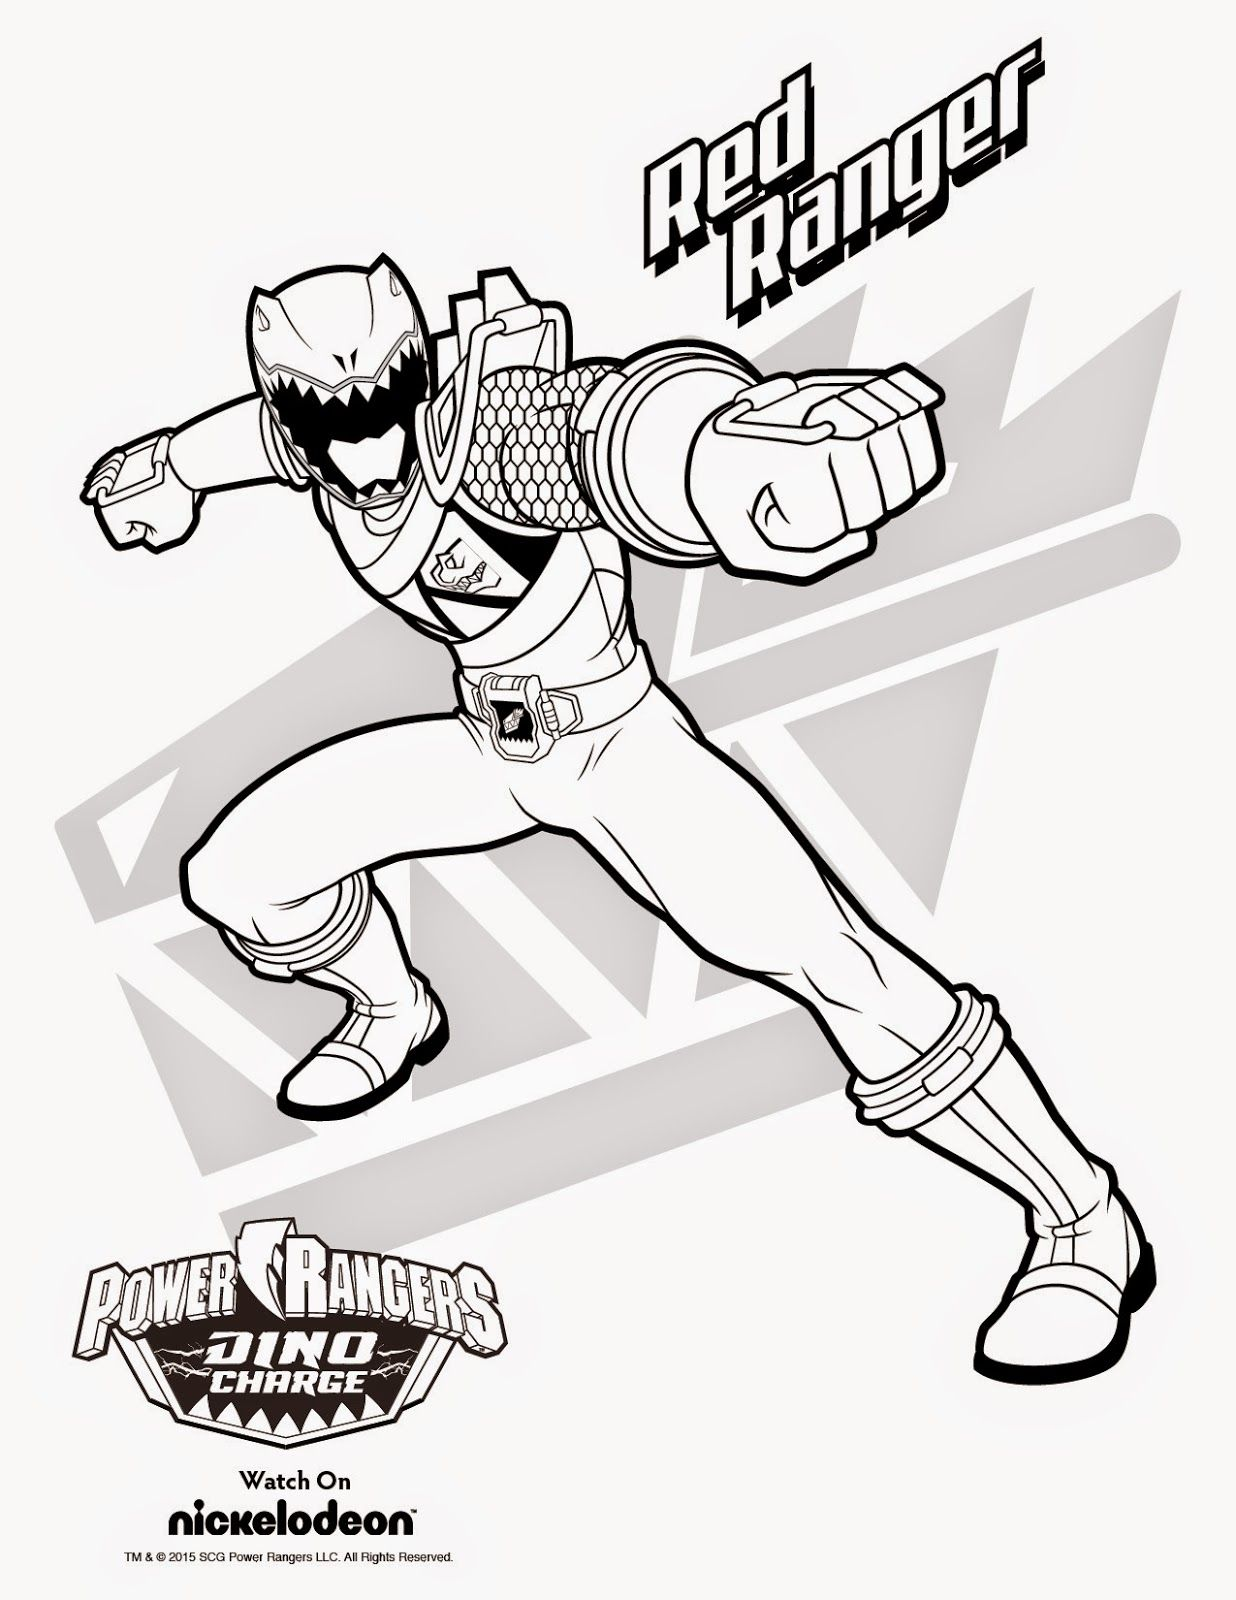 Free power ranger coloring pages online - Power Rangers Dino Thunder Riding Robot Coloring Page Related Image